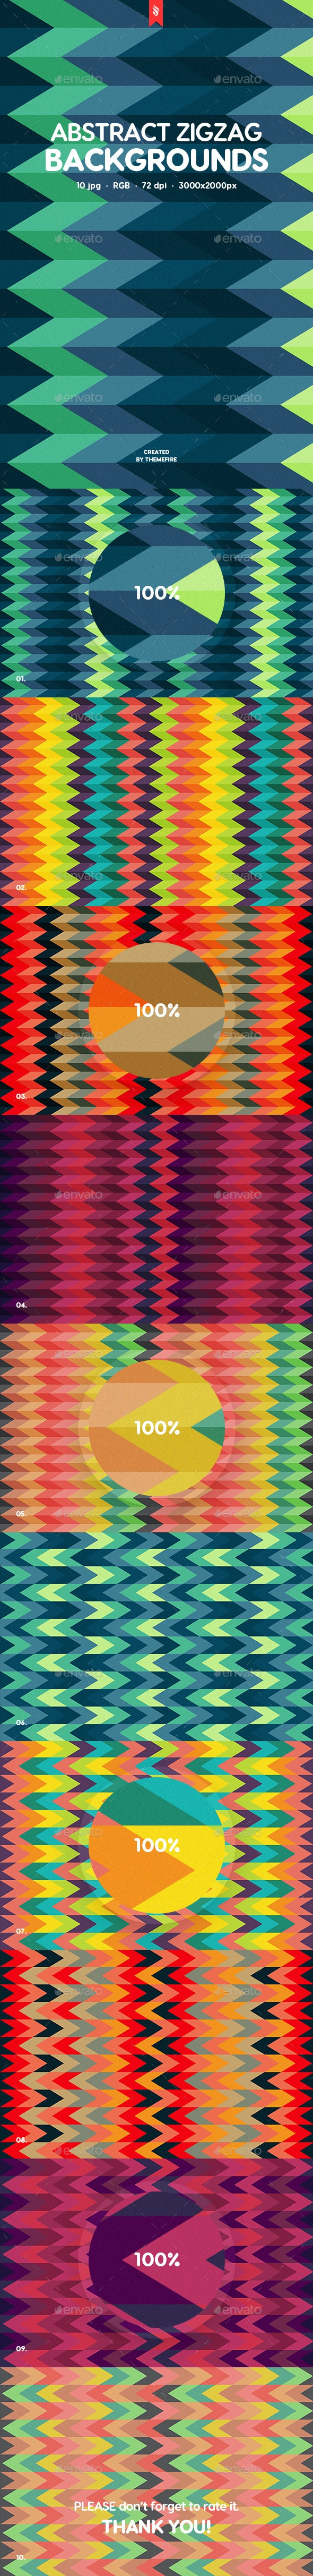 Abstract Zigzag Backgrounds - Patterns Backgrounds